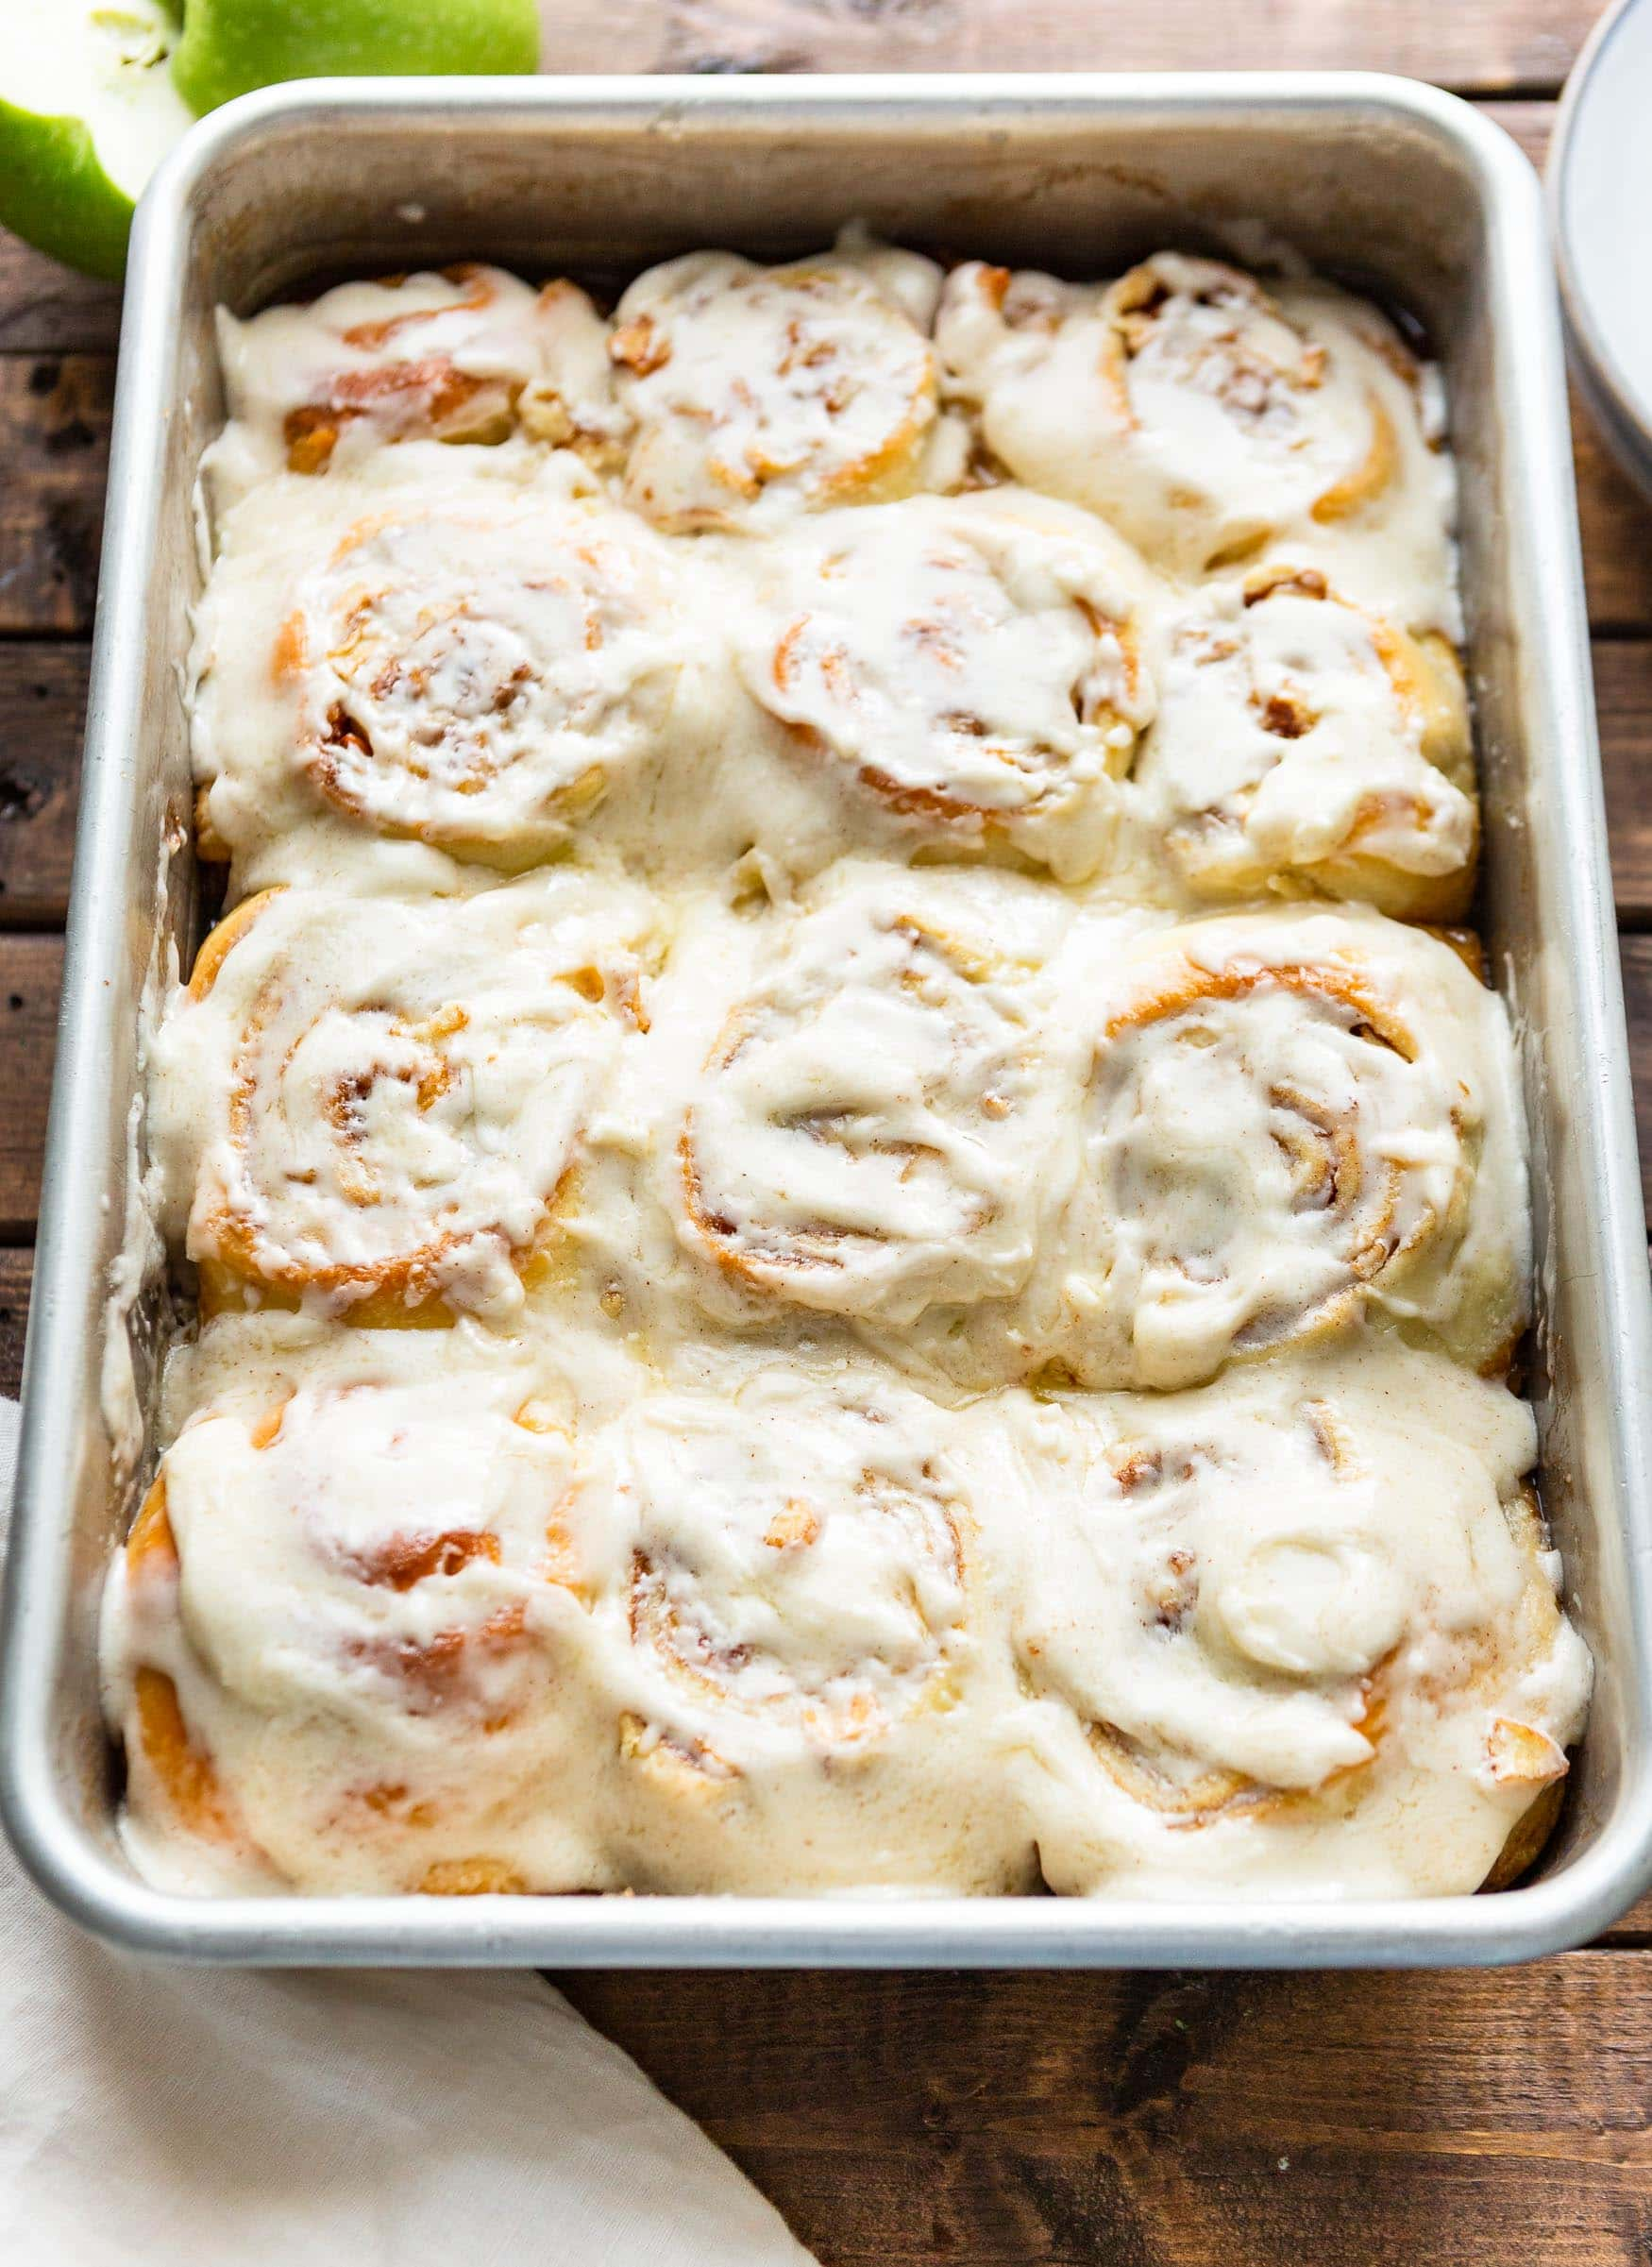 a photo of a 9x13 silver pan full of frosted golden cinnamon rolls.